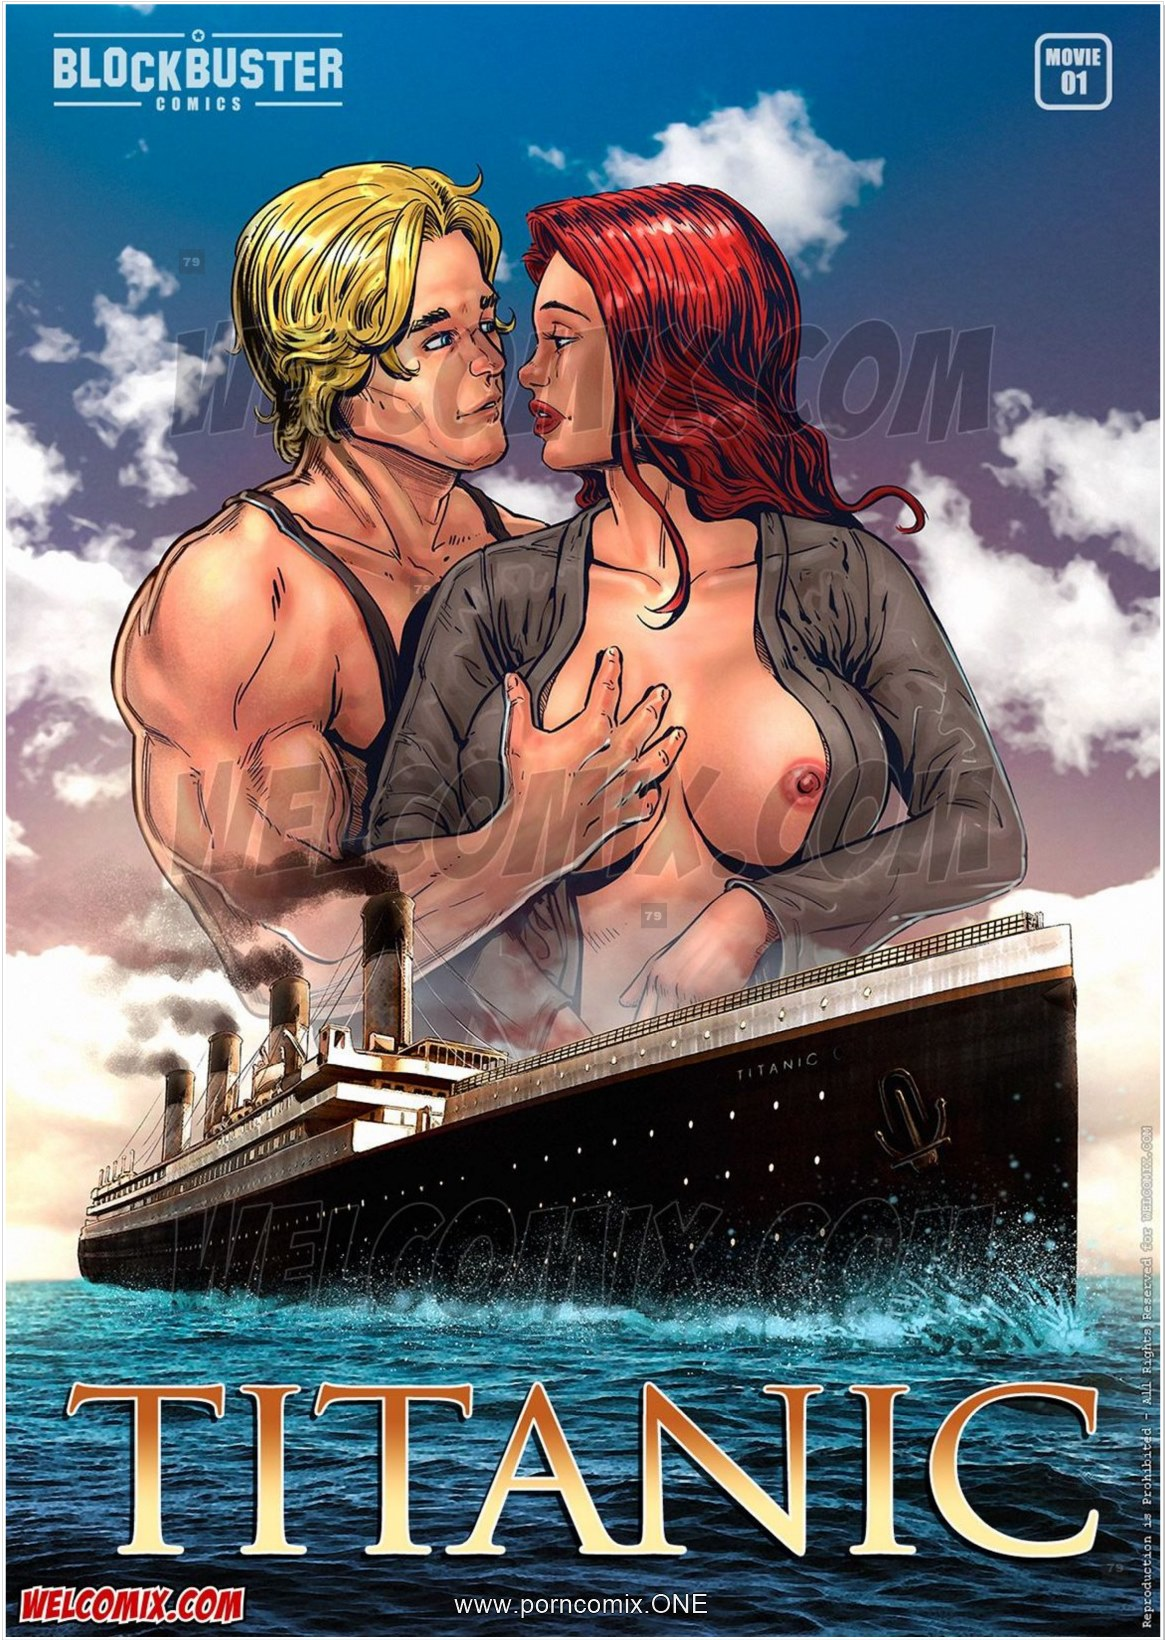 Titanic- Welcomix Blockbuster porn comics 8 muses